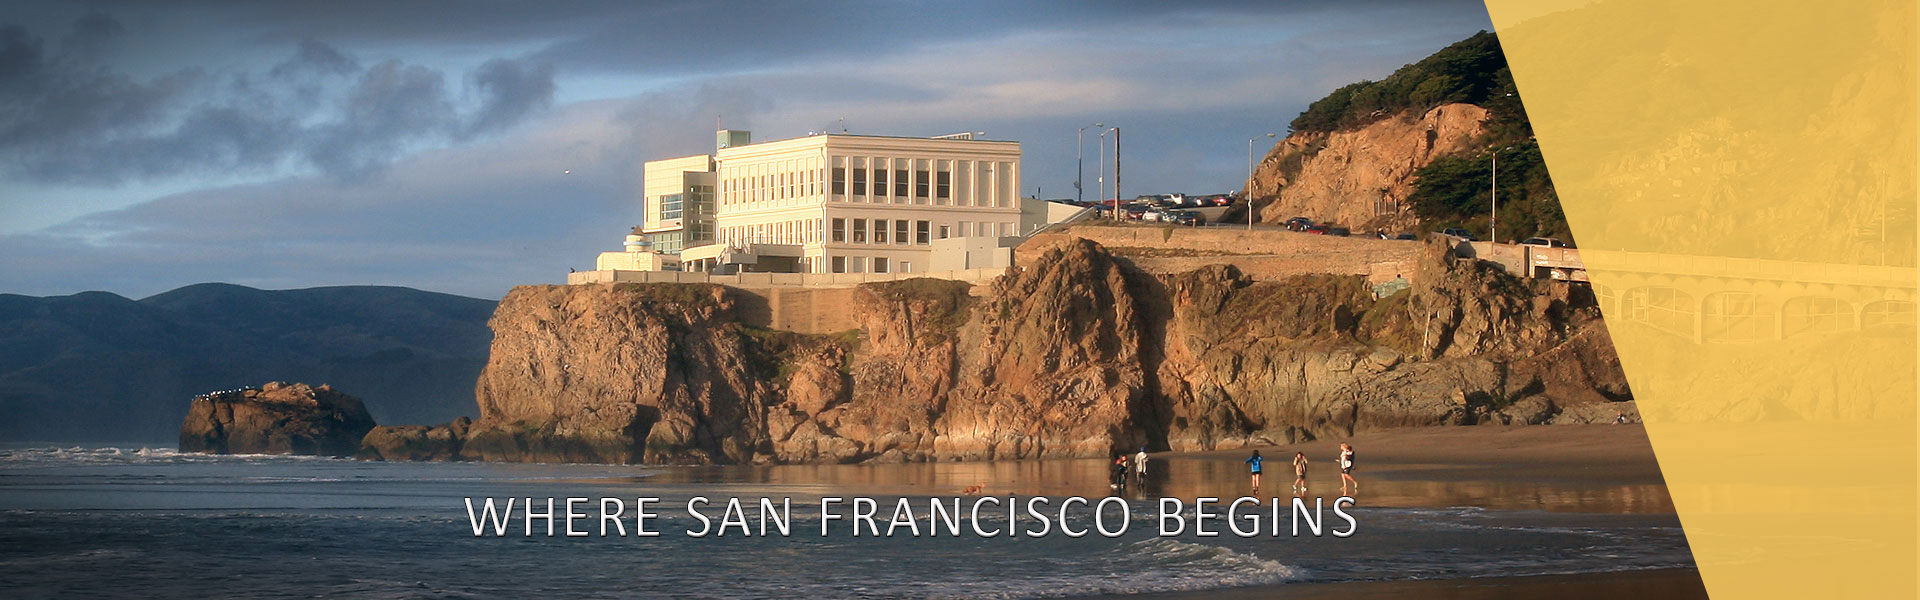 Both on last day of 2020 - Earth must be very upset: earthquake beneath Golden Gate Bridge next to iconic Cliff House (visited by 5 US presidents since 1863)... which sadly closes its doors